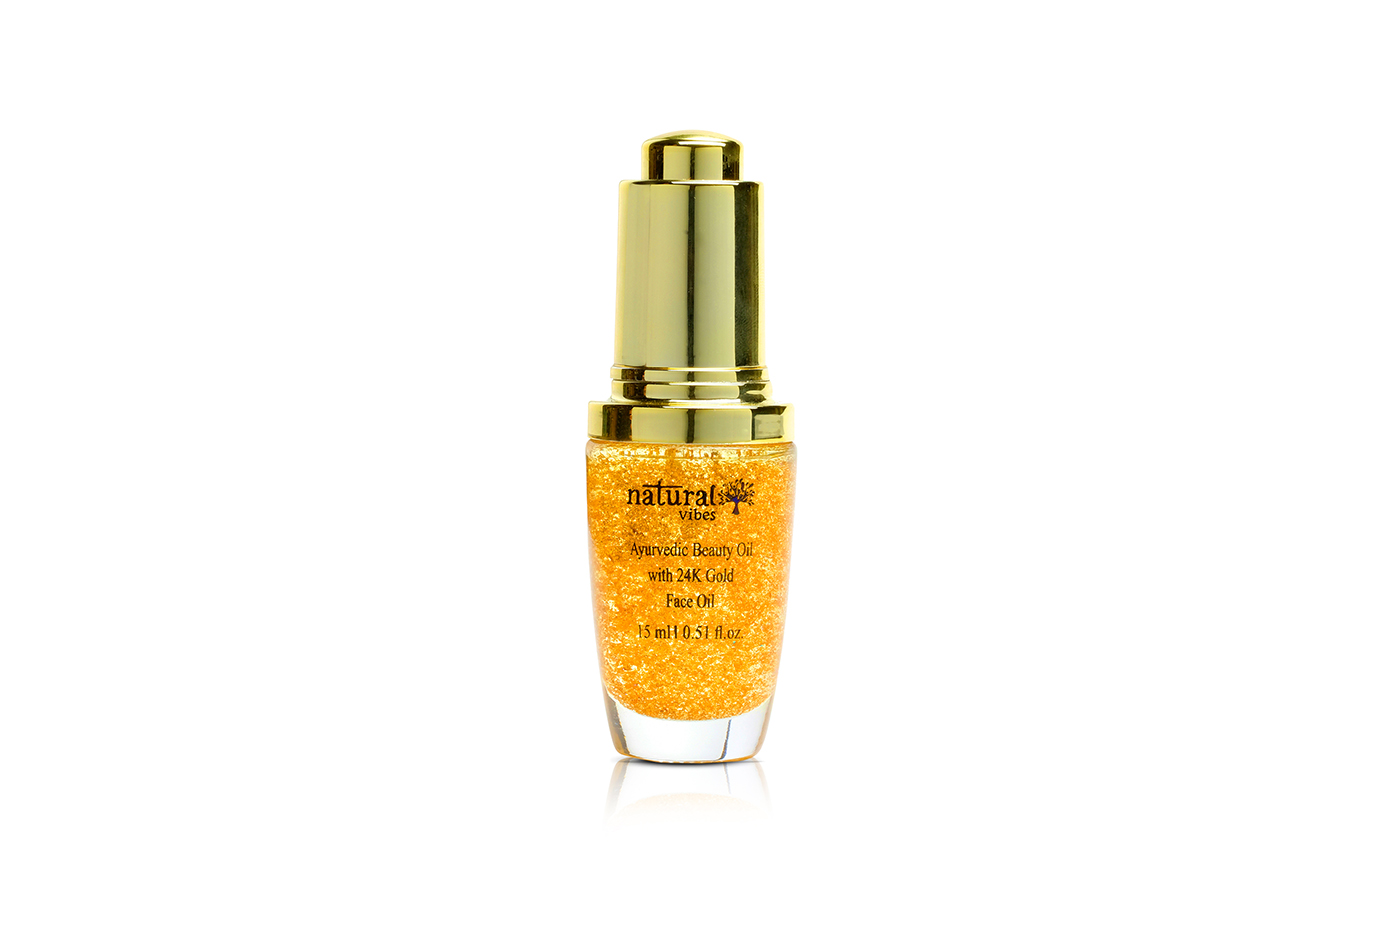 Natural Vibes Ayurvedic Beauty Oil with 24K Gold